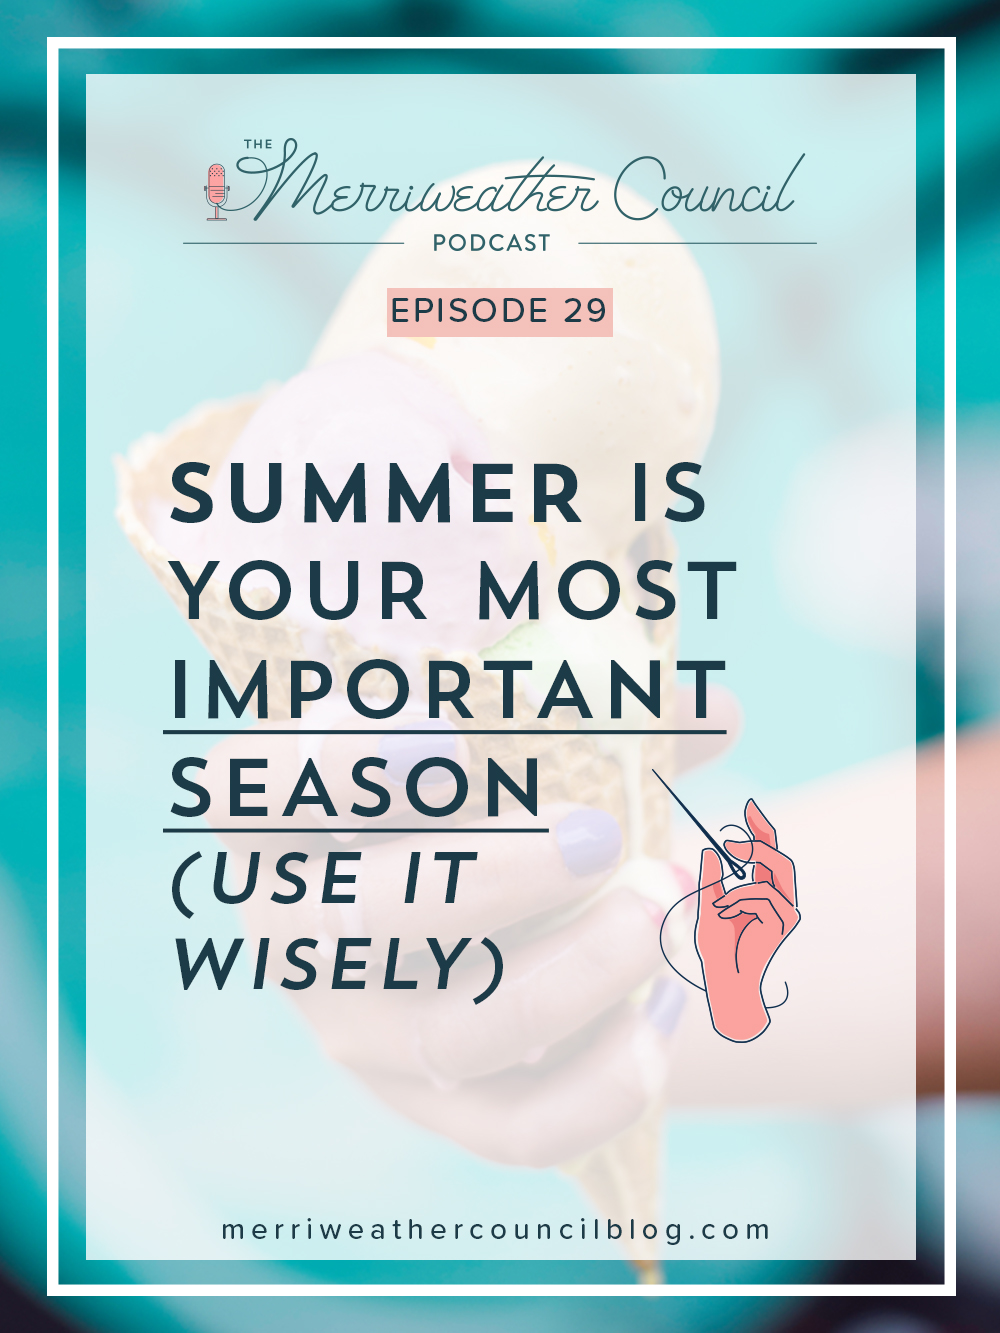 Episode 29: Summer is Your Most Important Season, Use it Wisely | The Merriweather Council Podcast